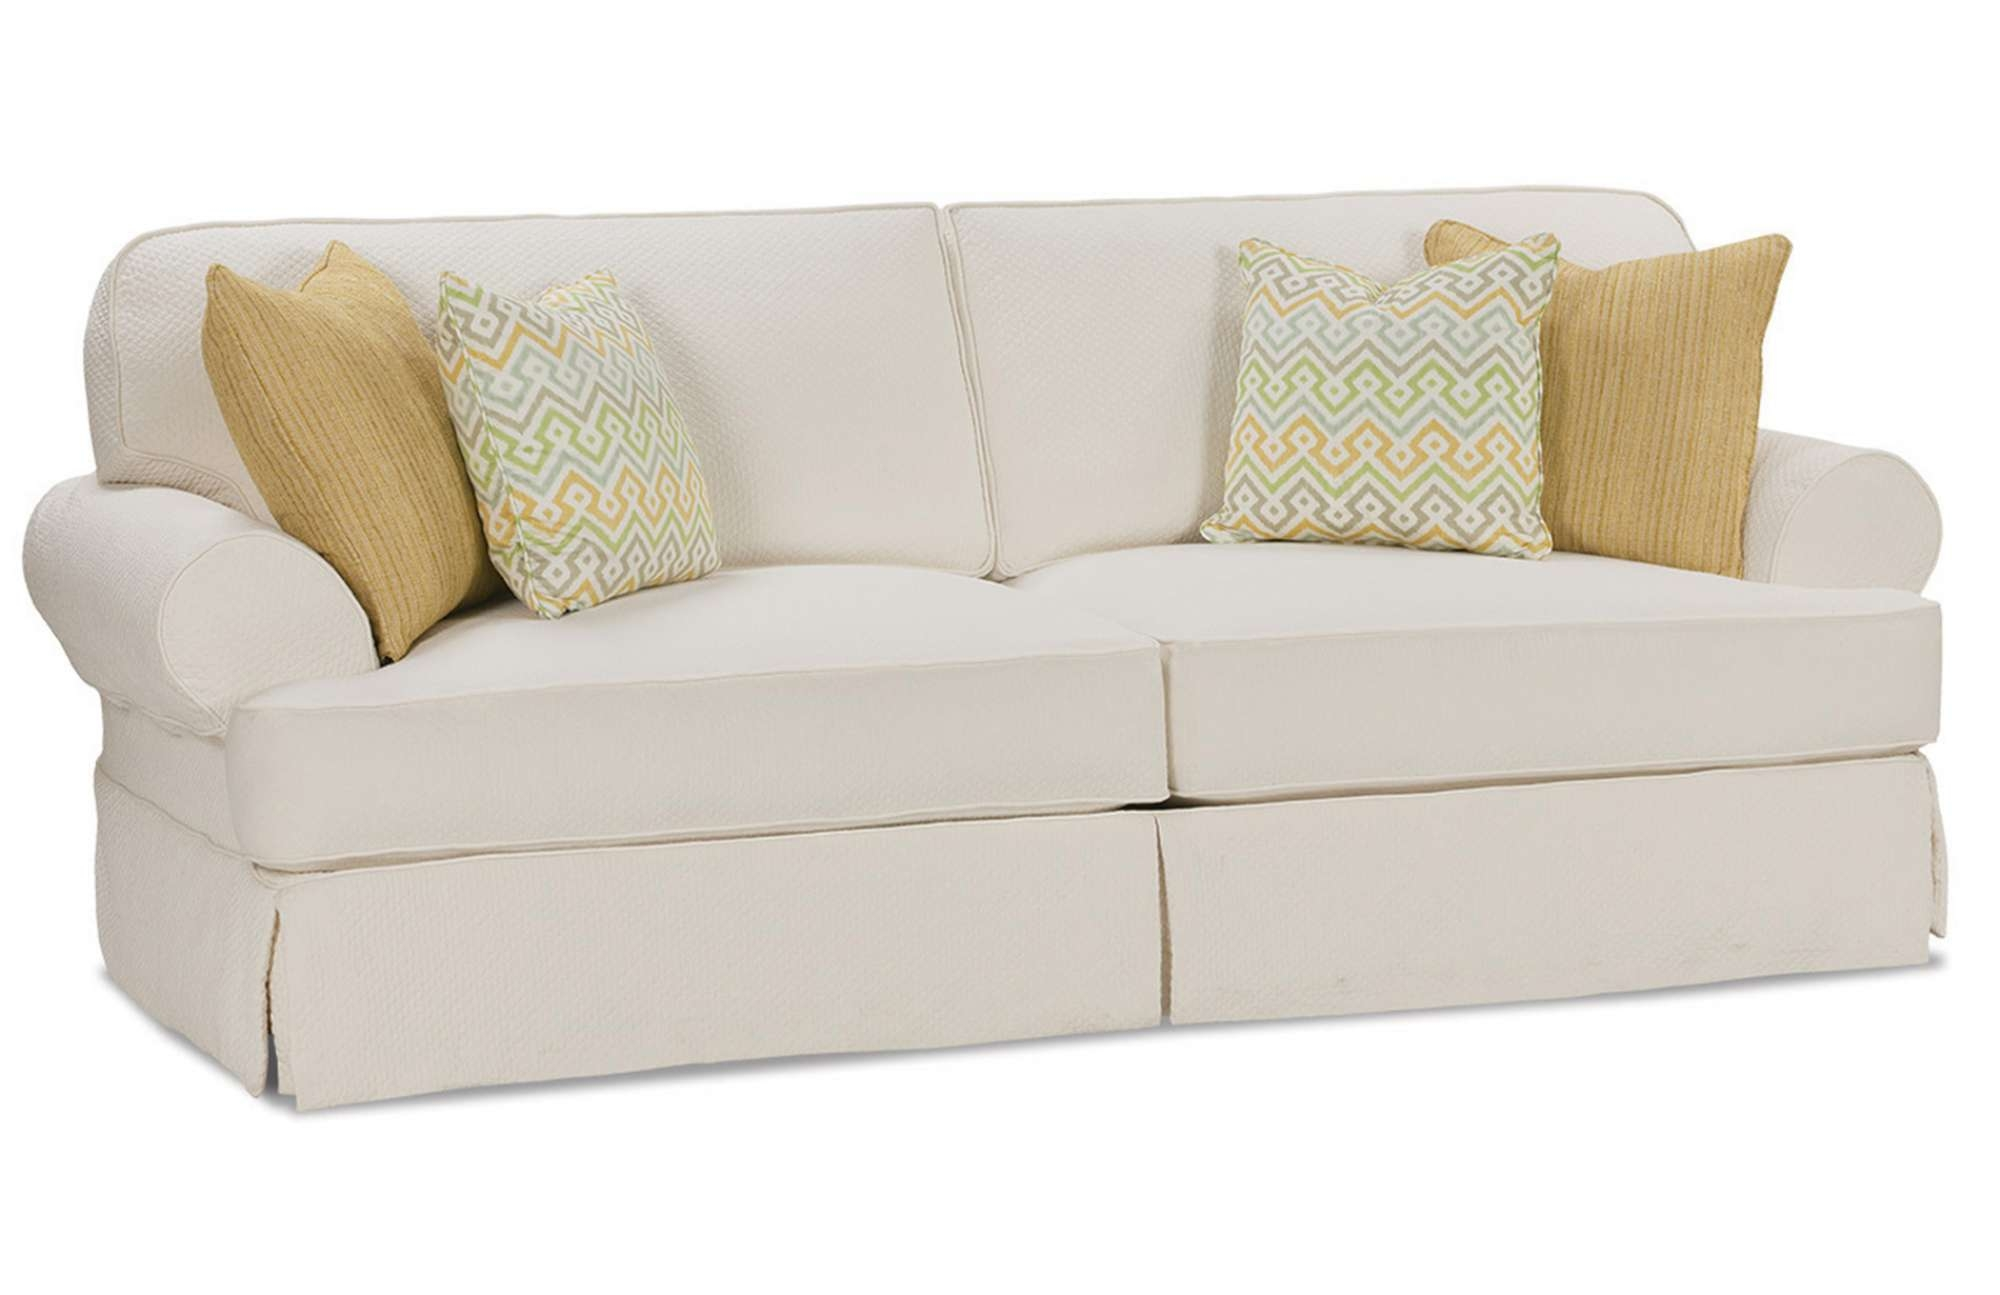 Decor Endearing Maximize Sofa Throws For Gorgeous Living Room With Cotton Throws For Sofas And Chairs (Image 6 of 15)